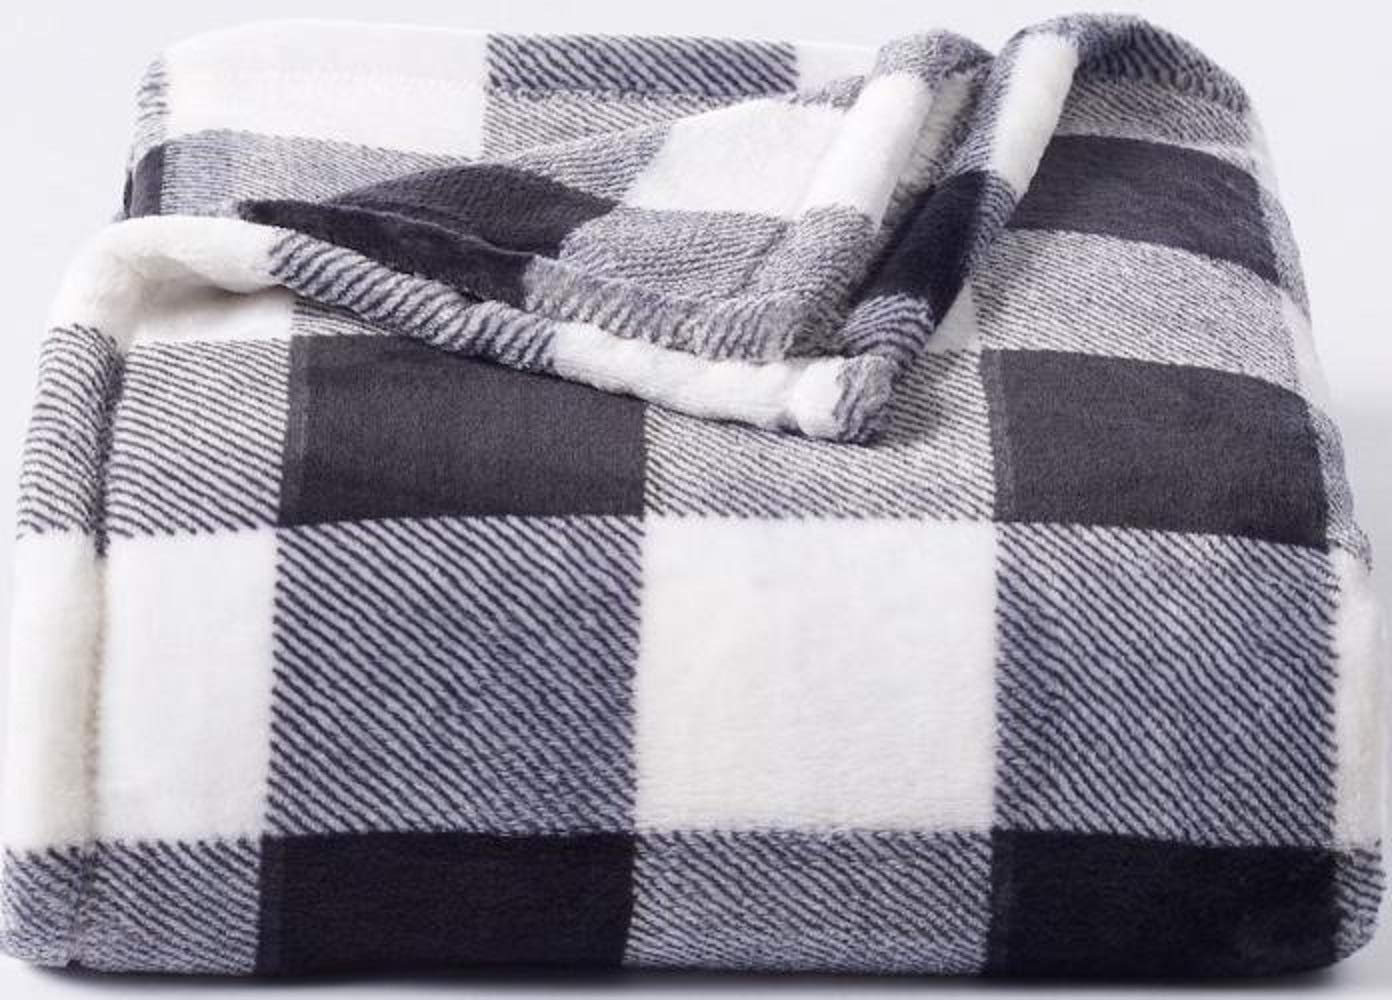 The Big One Supersoft Plush Throw Black White Buffalo Check - 60 x 72 Kohls Department Store